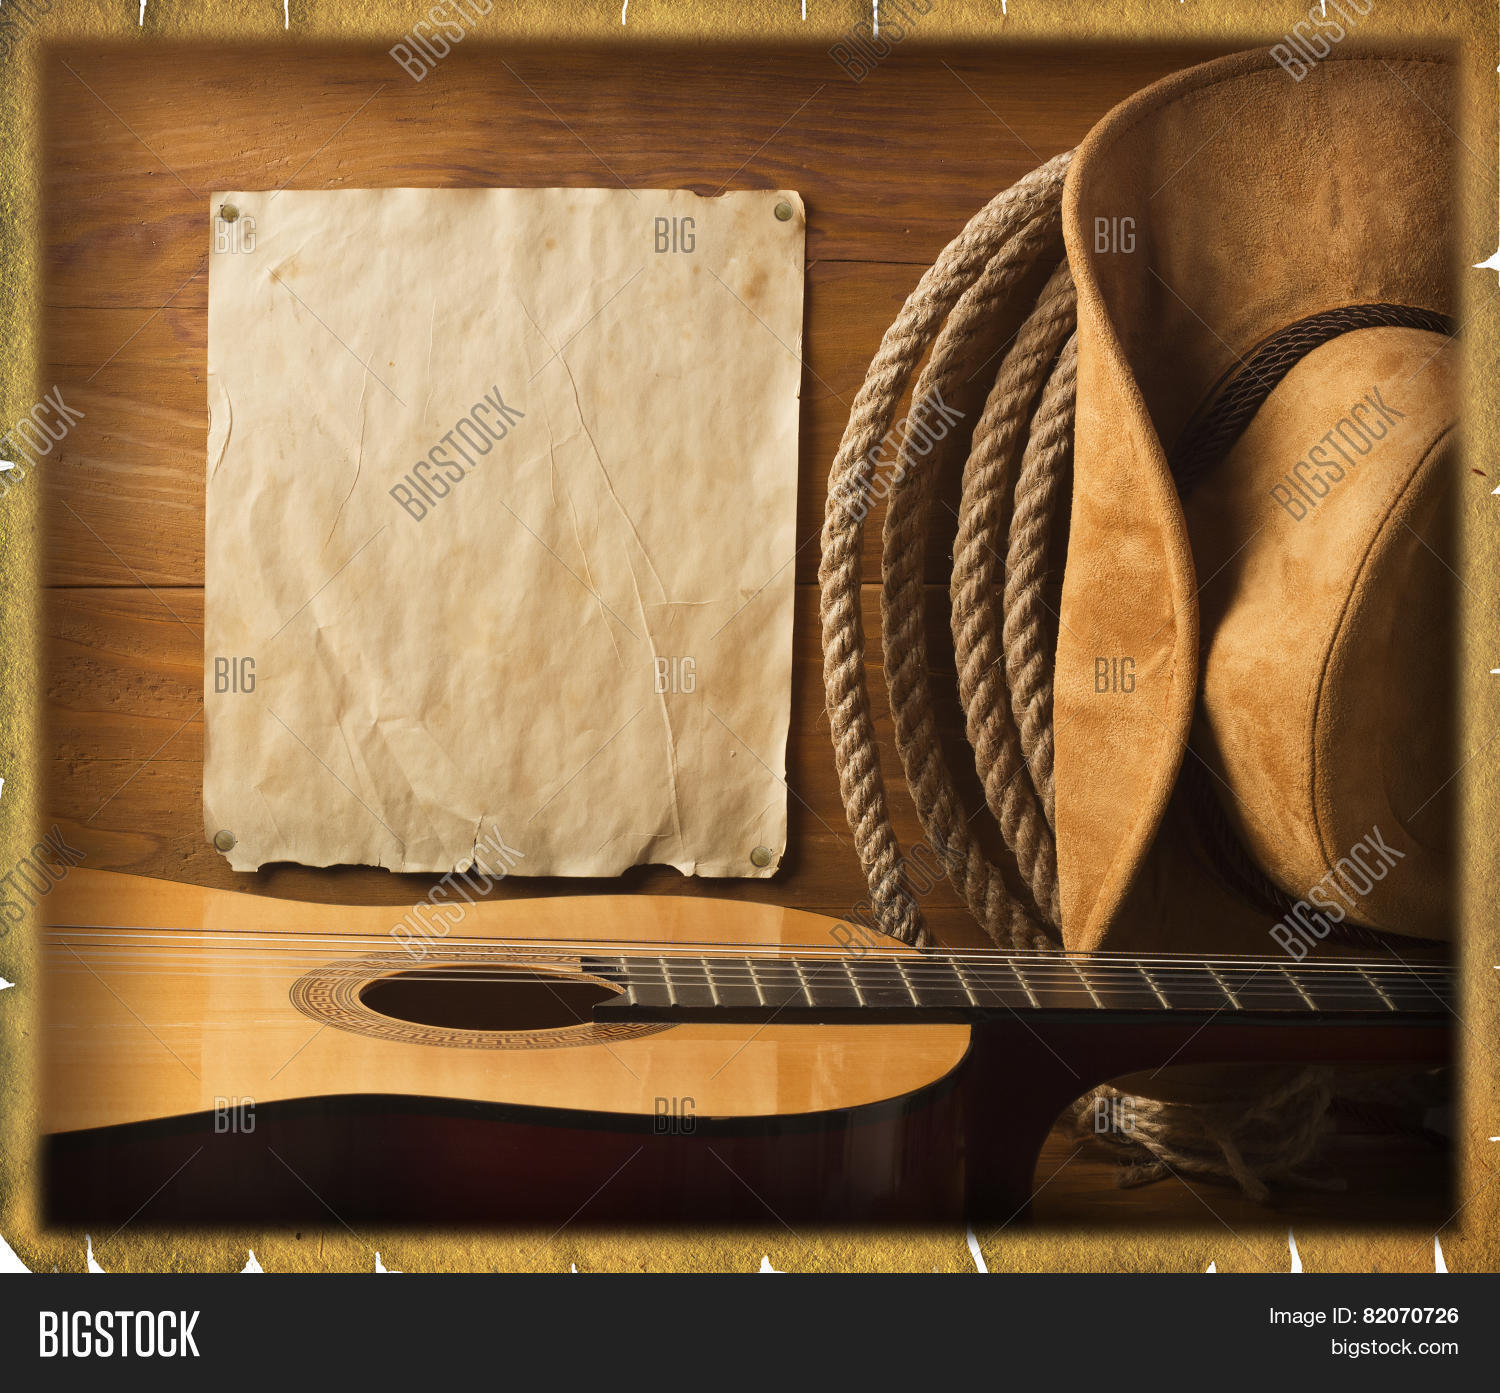 American Cowboy Country Music Image & Photo | Bigstock